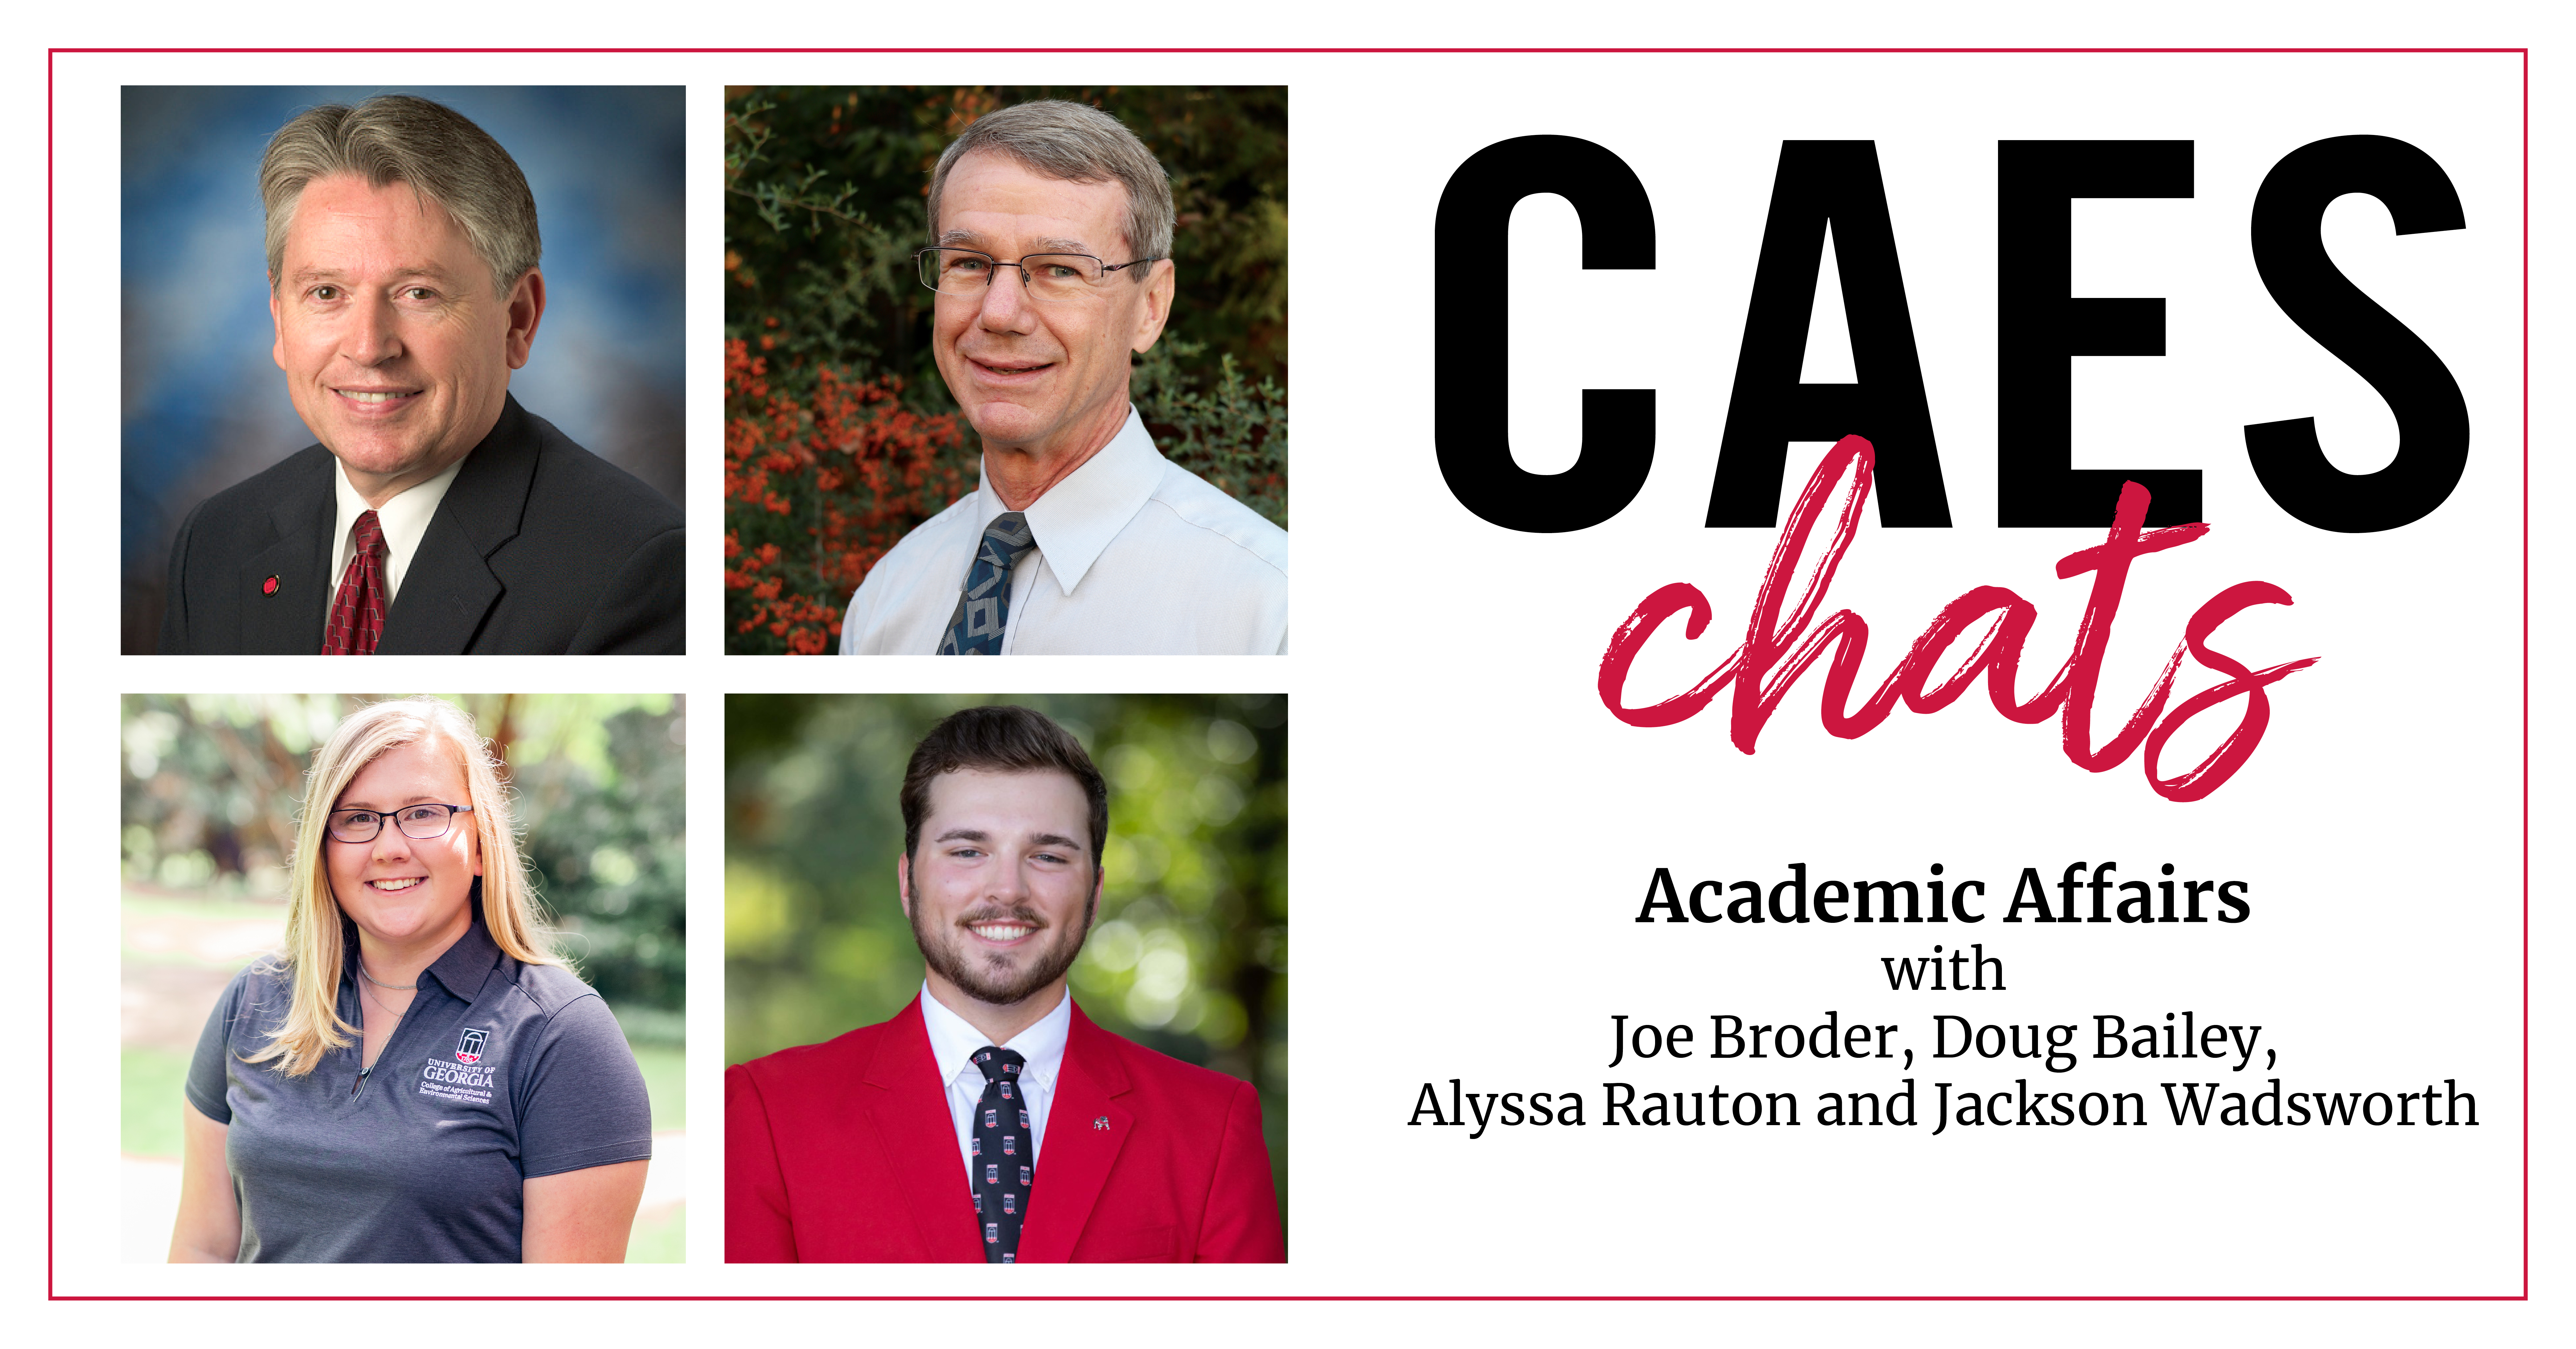 CAES Chats with Academic Affairs Featuring  Joe Broder, Doug Bailey, Alyssa Rauton and Jackson Wadsworth